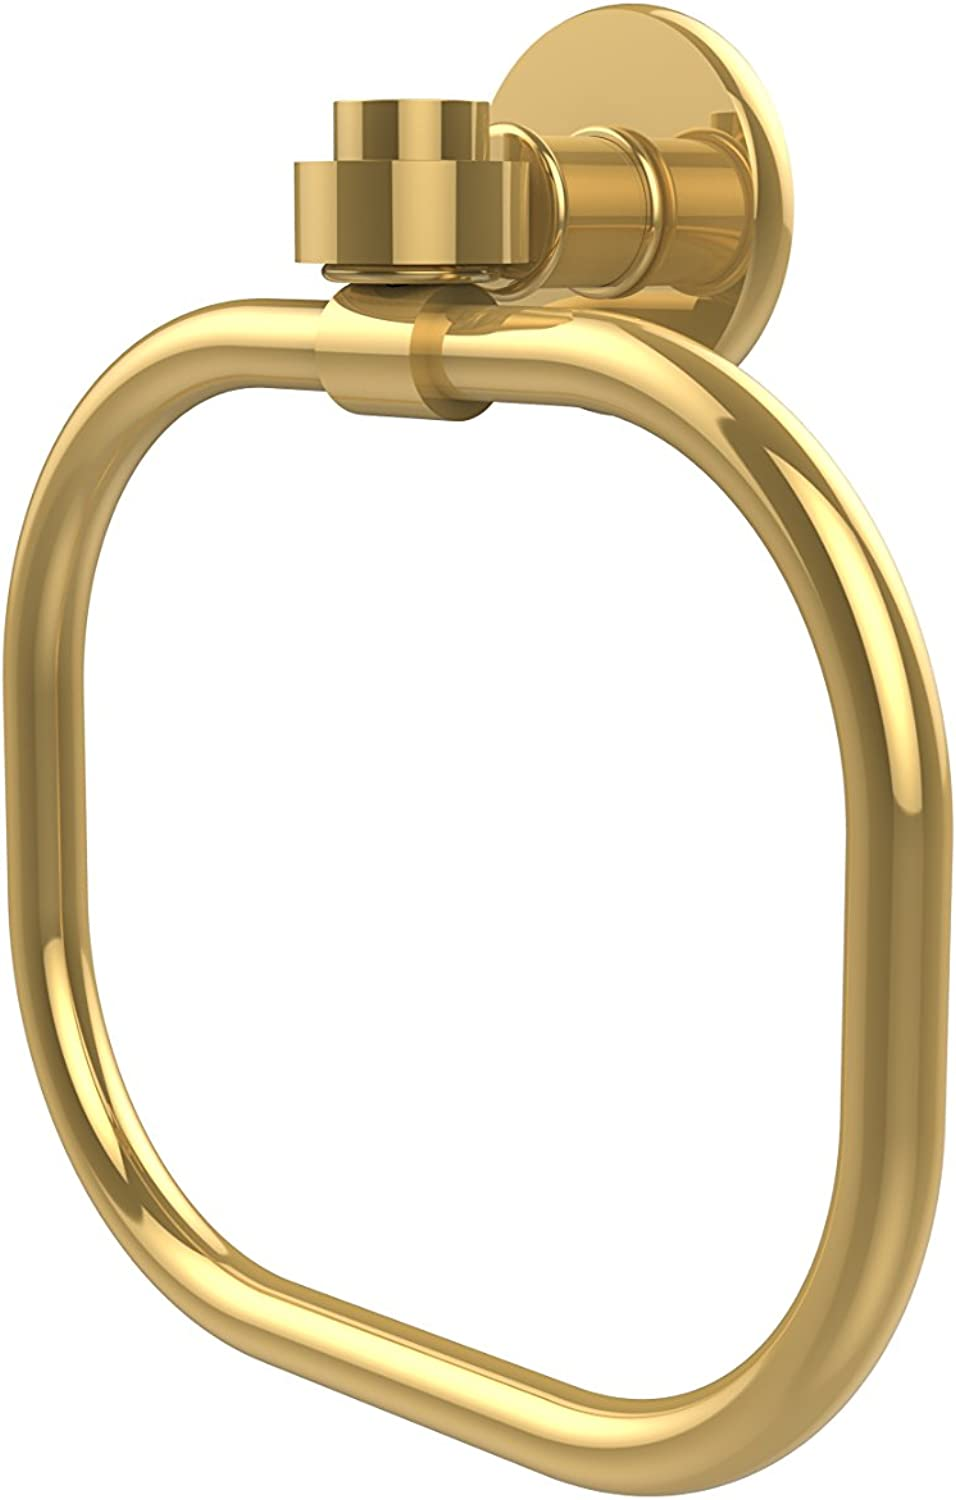 Allied Brass 2016-PB Continental Collection Towel Ring, Polished Brass